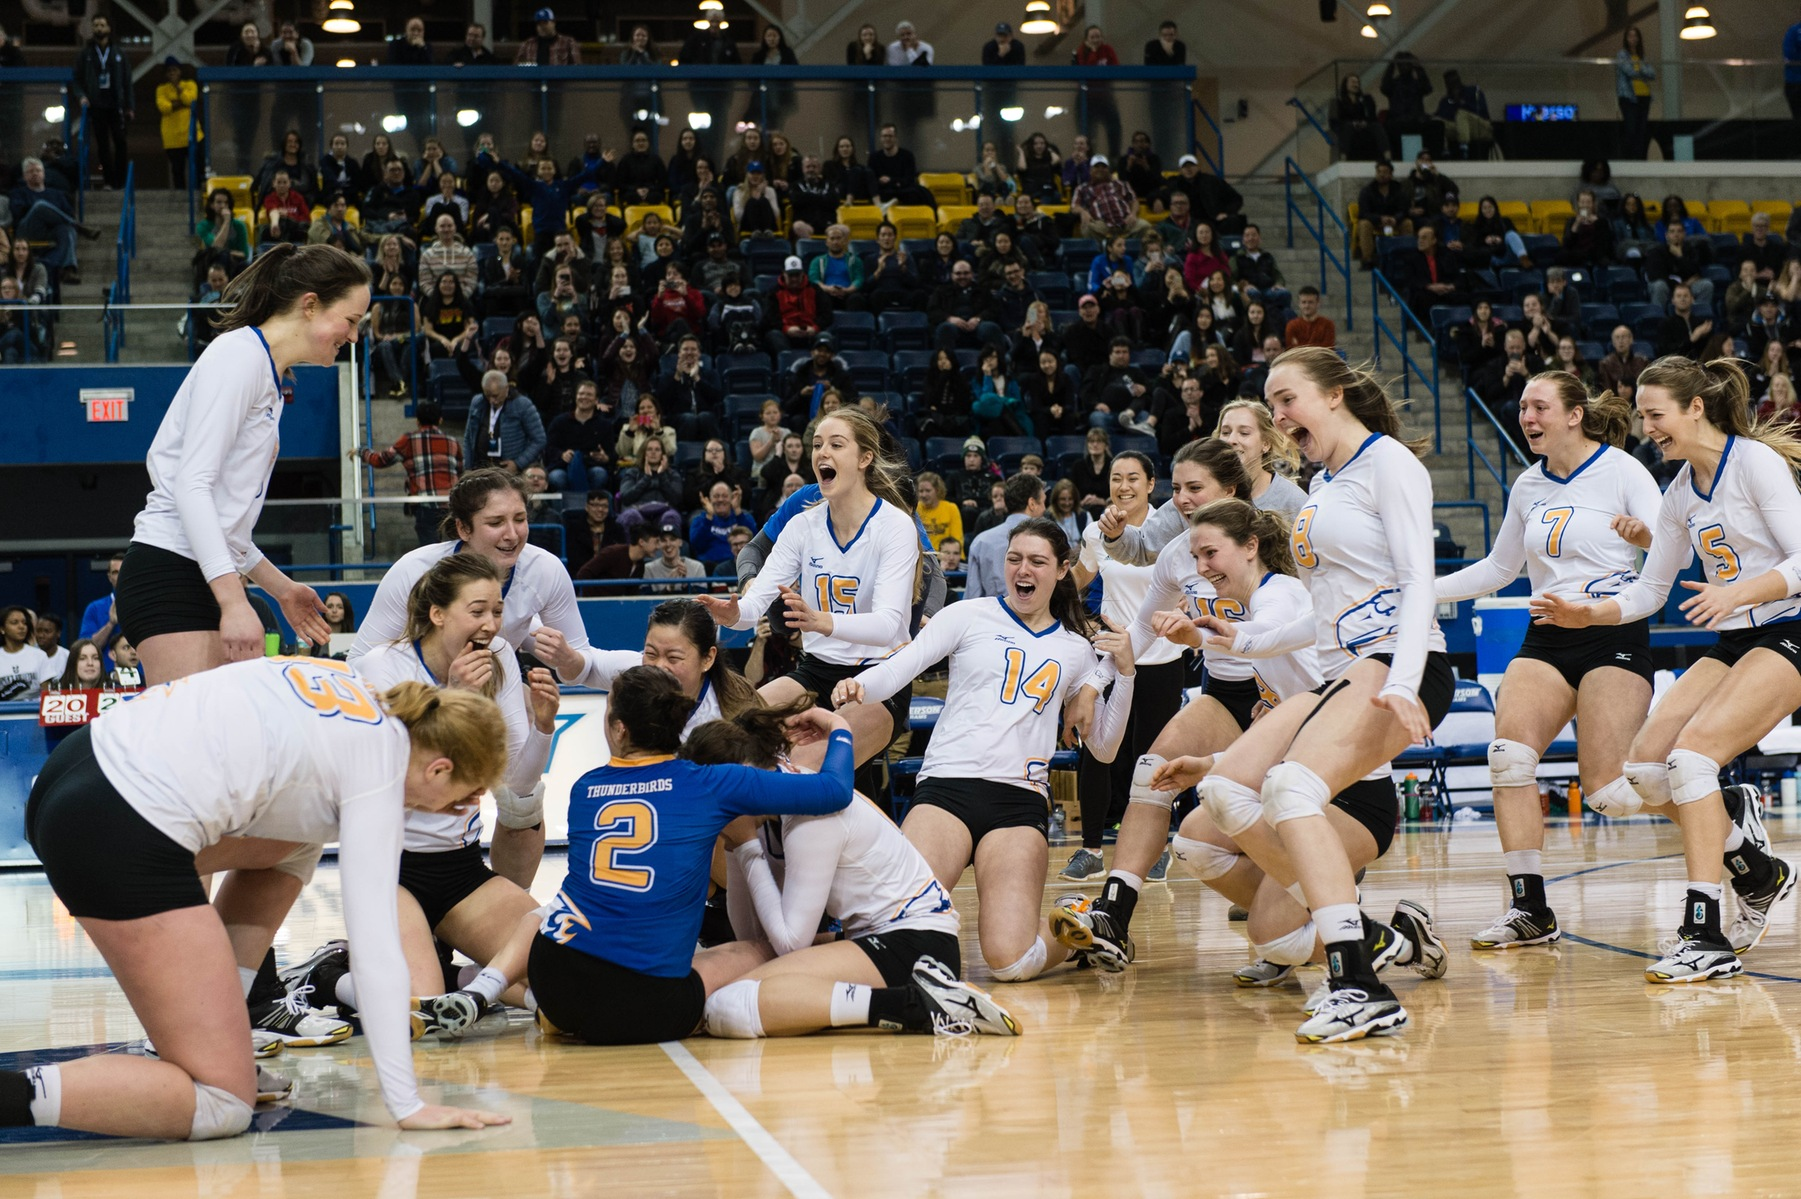 2017 U SPORTS Champions Series: Veteran Thunderbirds earn women's volleyball redemption